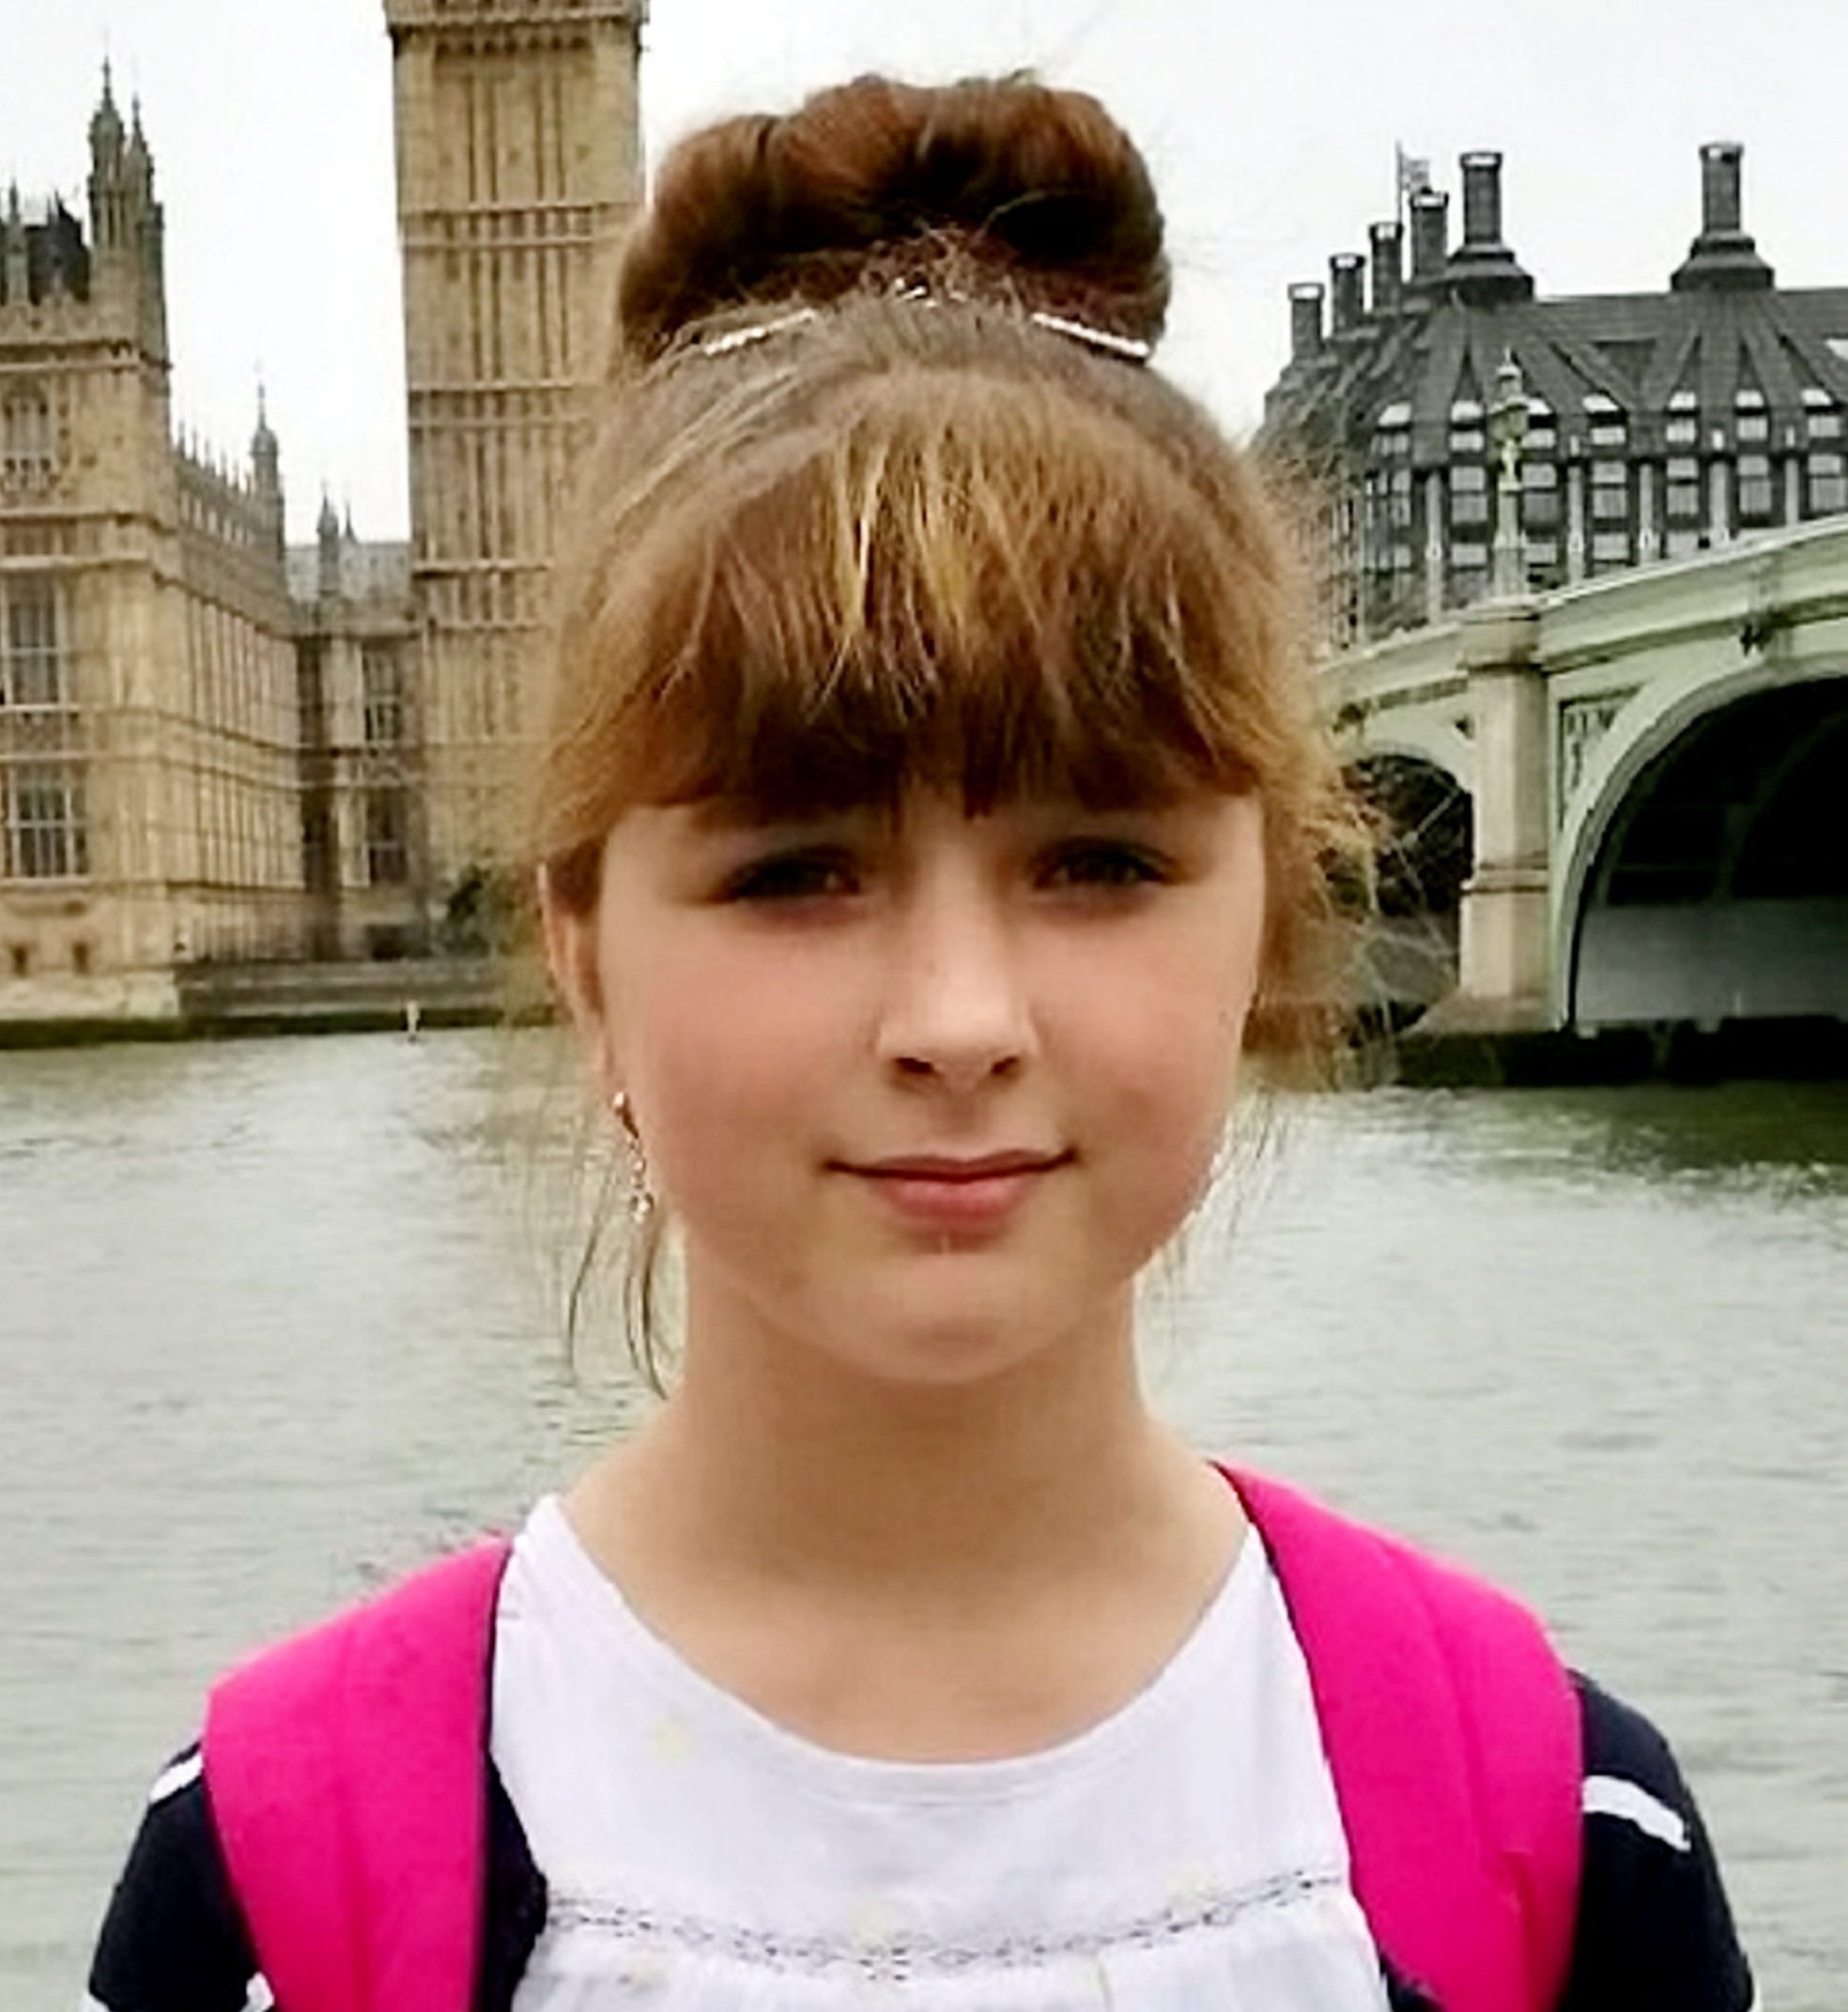 FILE PICTURE - Linked to todays SWNS story SWMDmurder, November 28, 2018, about a 16 year-old, who will appear on trial at Wolverhampton Crown court after being charged with rape and murder of 14-year-old Viktorija Sokolova. Vicktorija Sokolova. Police have named the teenage girl whose body was found in Wolverhampton?s West Park, as Lithuanian-born Vicktorija Sokolova. See NTI story NTIMURDER. The 14-year-old was reported missing on Wednesday (11 April), but sadly found deceased just after 7am yesterday. A post mortem examination concluded she died from blunt force trauma to her head. Two teenage boys, aged 16 and 17, arrested this morning on suspicion of her murder remain in police custody. West Park is expected to remain closed over the weekend while a comprehensive forensic examination is conducted. Superintendent Harvi Khatkar, of Wolverhampton Police, said: ?This is a tragic incident and our thoughts are with Vicktorija's family and friends at this terrible time.